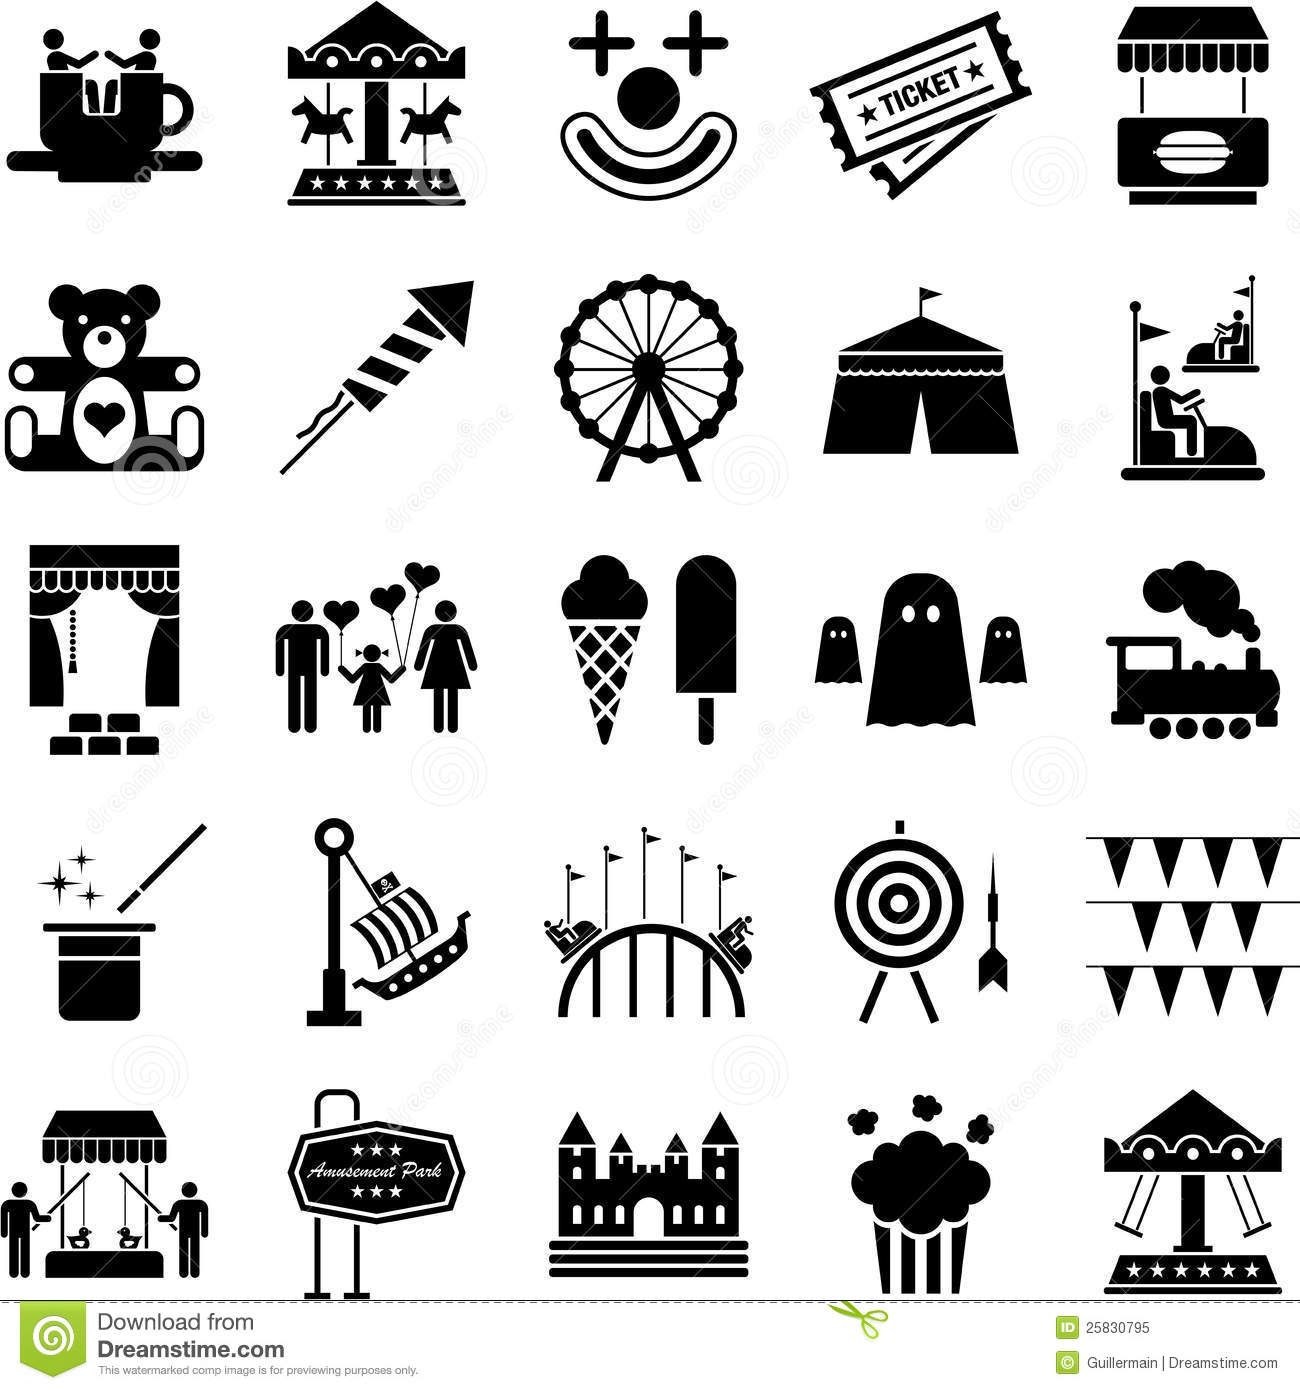 Amusement Park icons stock vector. Illustration of emotion